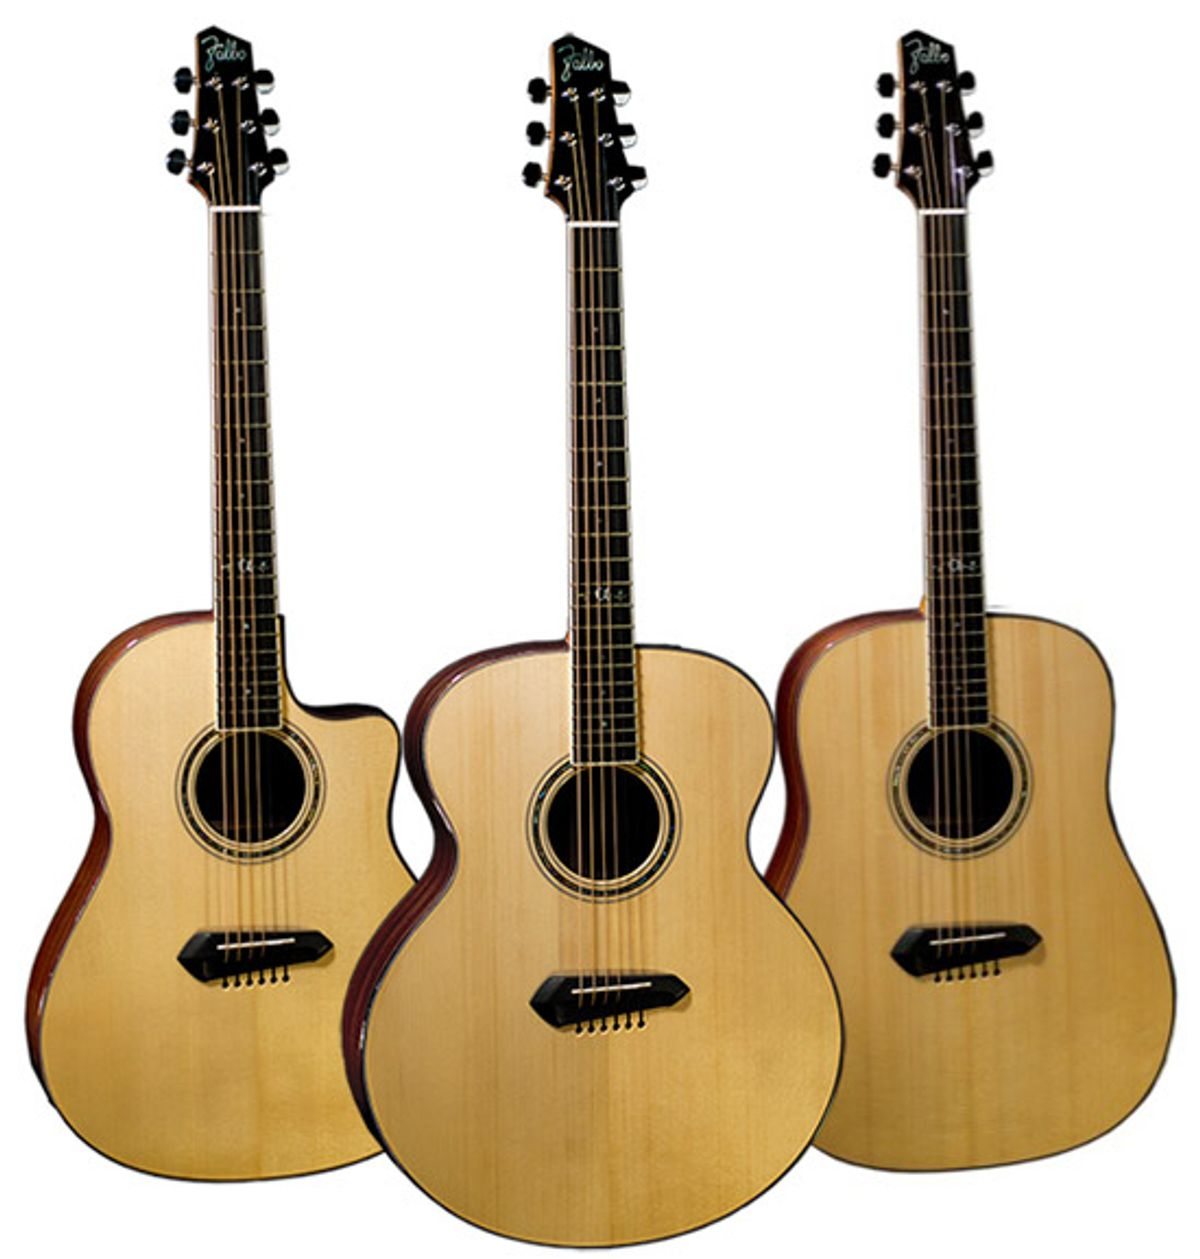 Falbo Guitars Launches with Alpha Series Acoustics